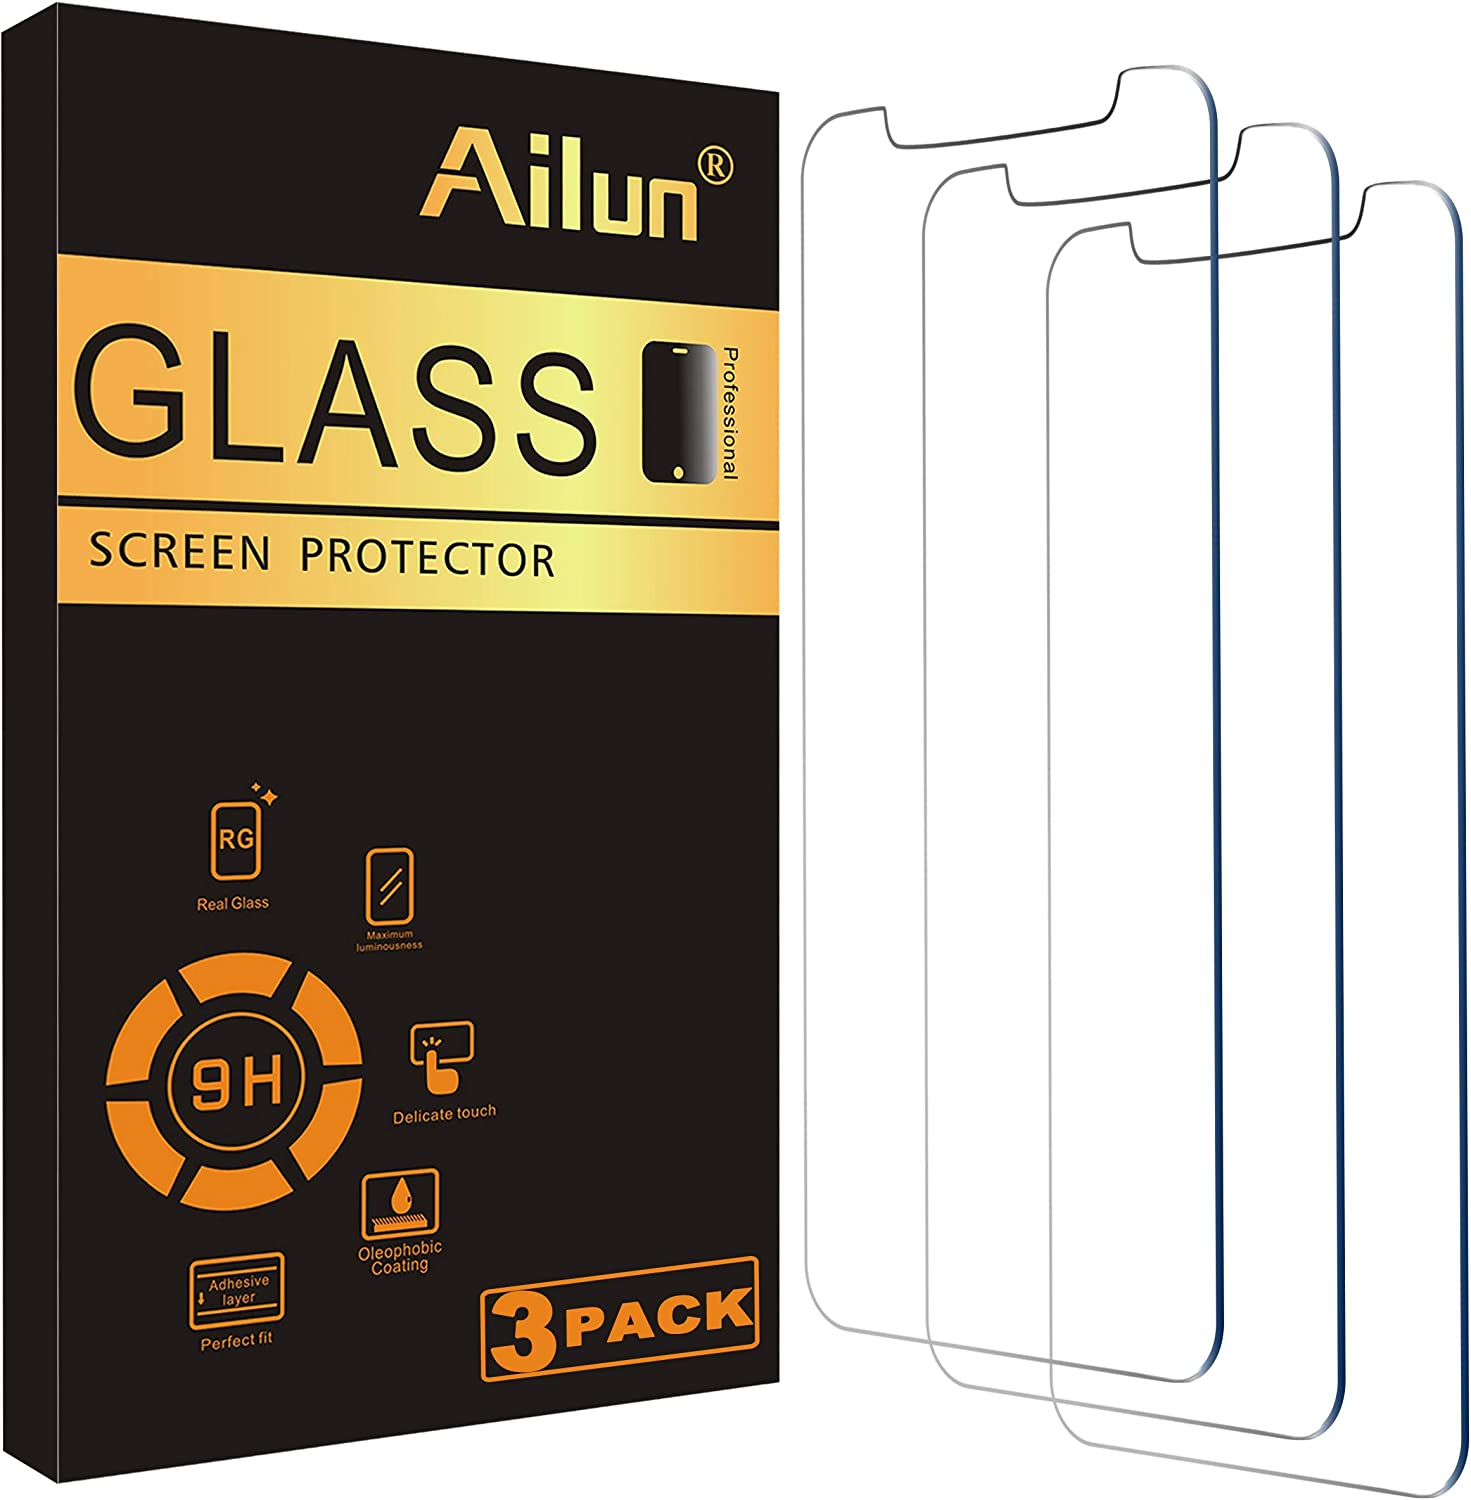 Ailun 3Pack Tempered Glass Screen Protector for iPhone12/iPh